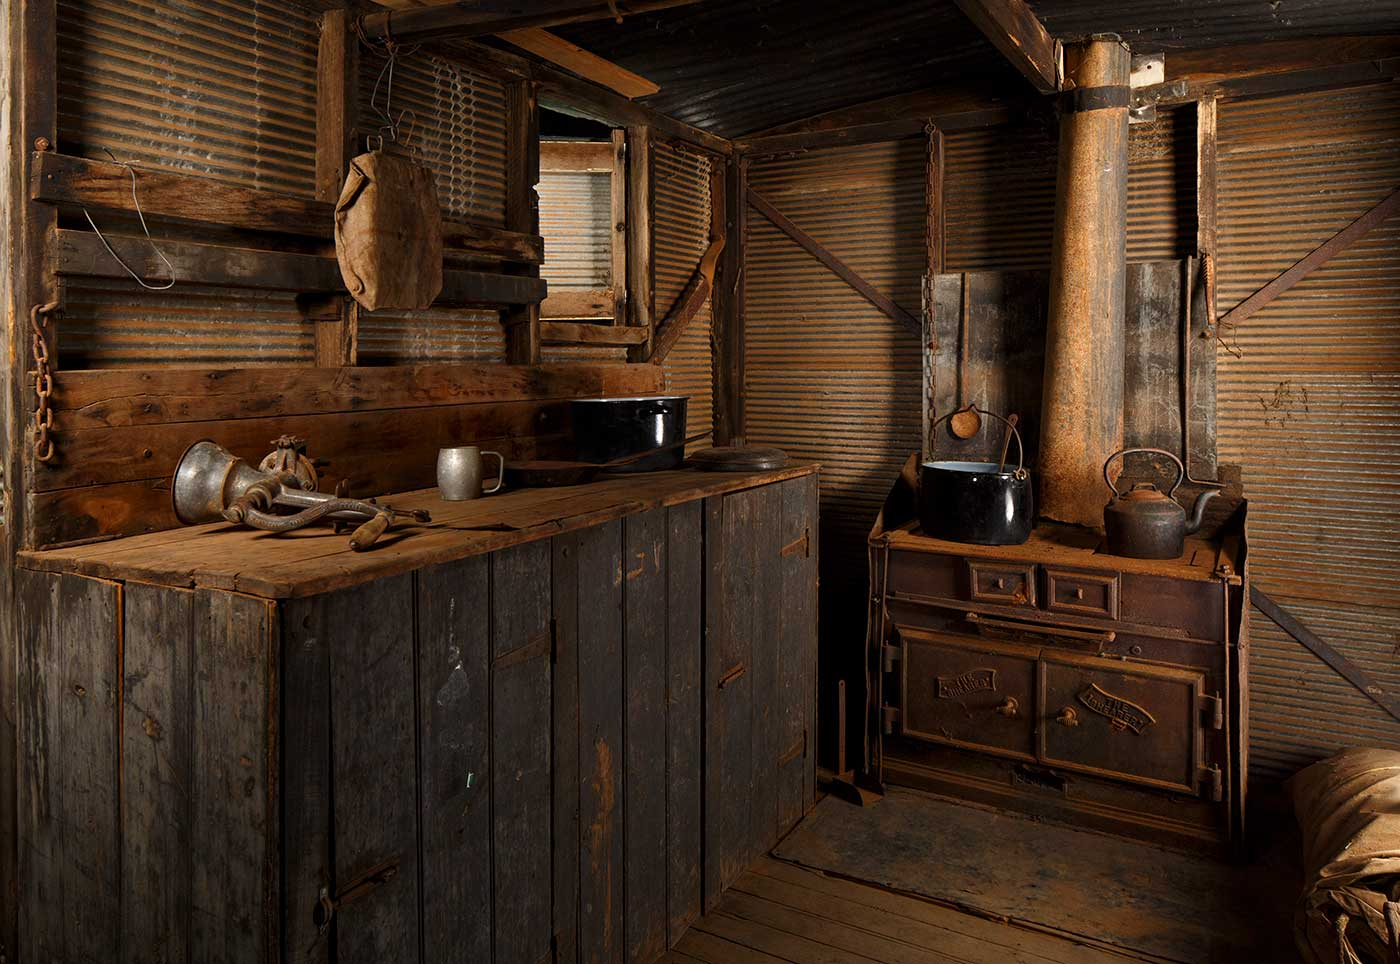 A cook's galley in the form of a metal-clad, timber and iron-framed box raised on wagon wheels. This view is of the front half of the galley showing the wood fired stove on the right and the galley bench on the left. - click to view larger image